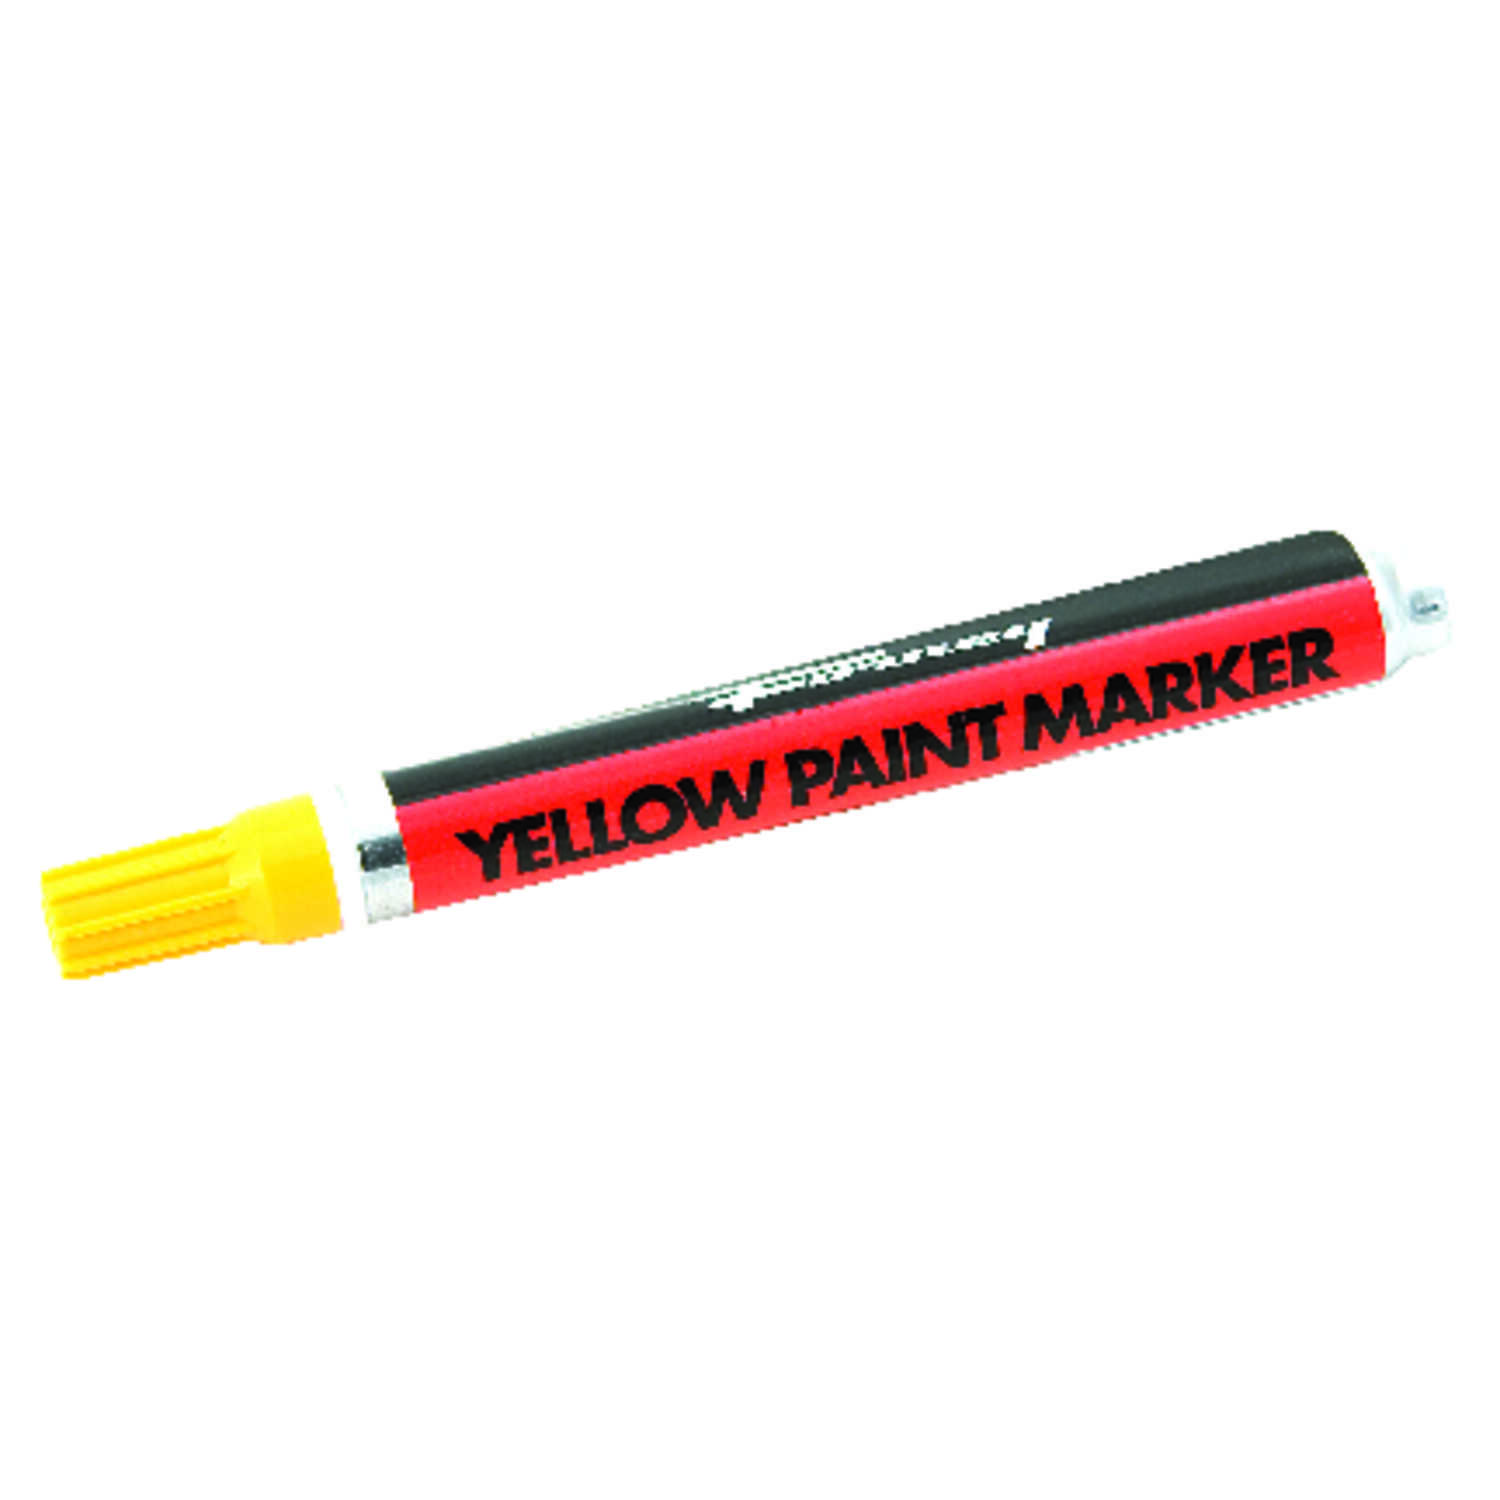 Forney  8.75 in. L x 1.88 in. W Yellow Paint Marker  1 pc.